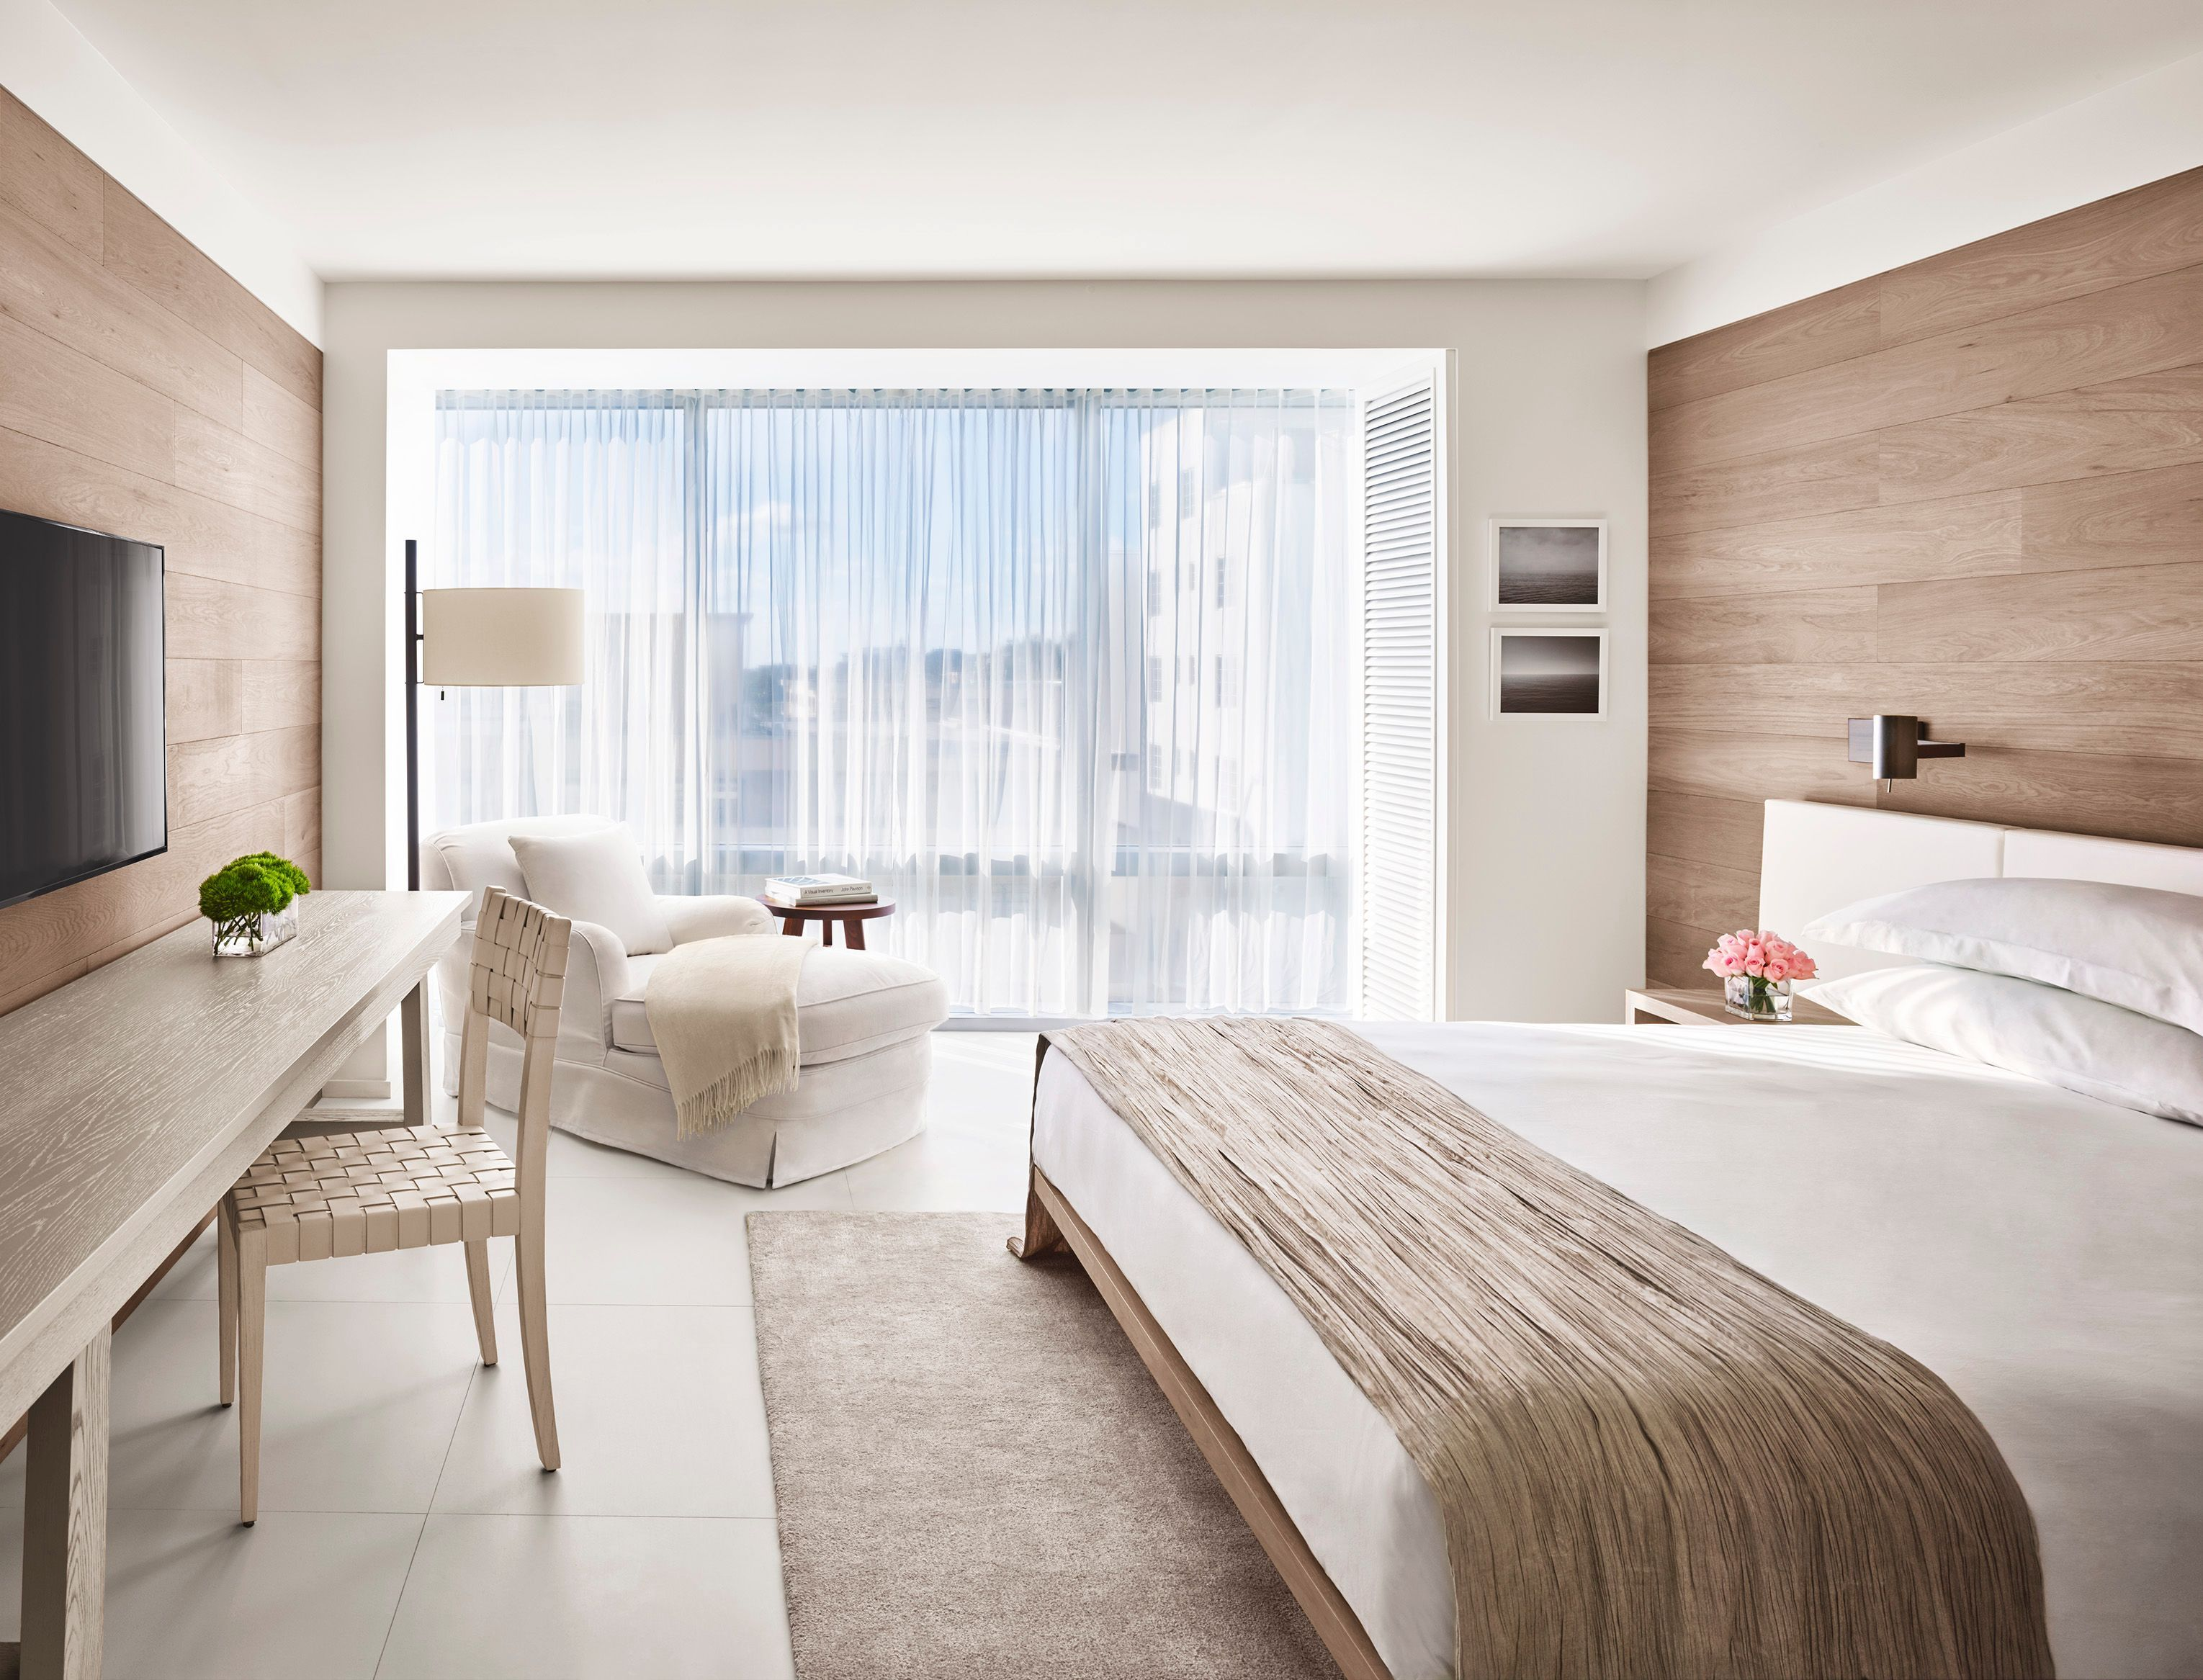 Yabu pushelberg the miami beach edition bedroom luxury for Luxury hotel bedroom interior design